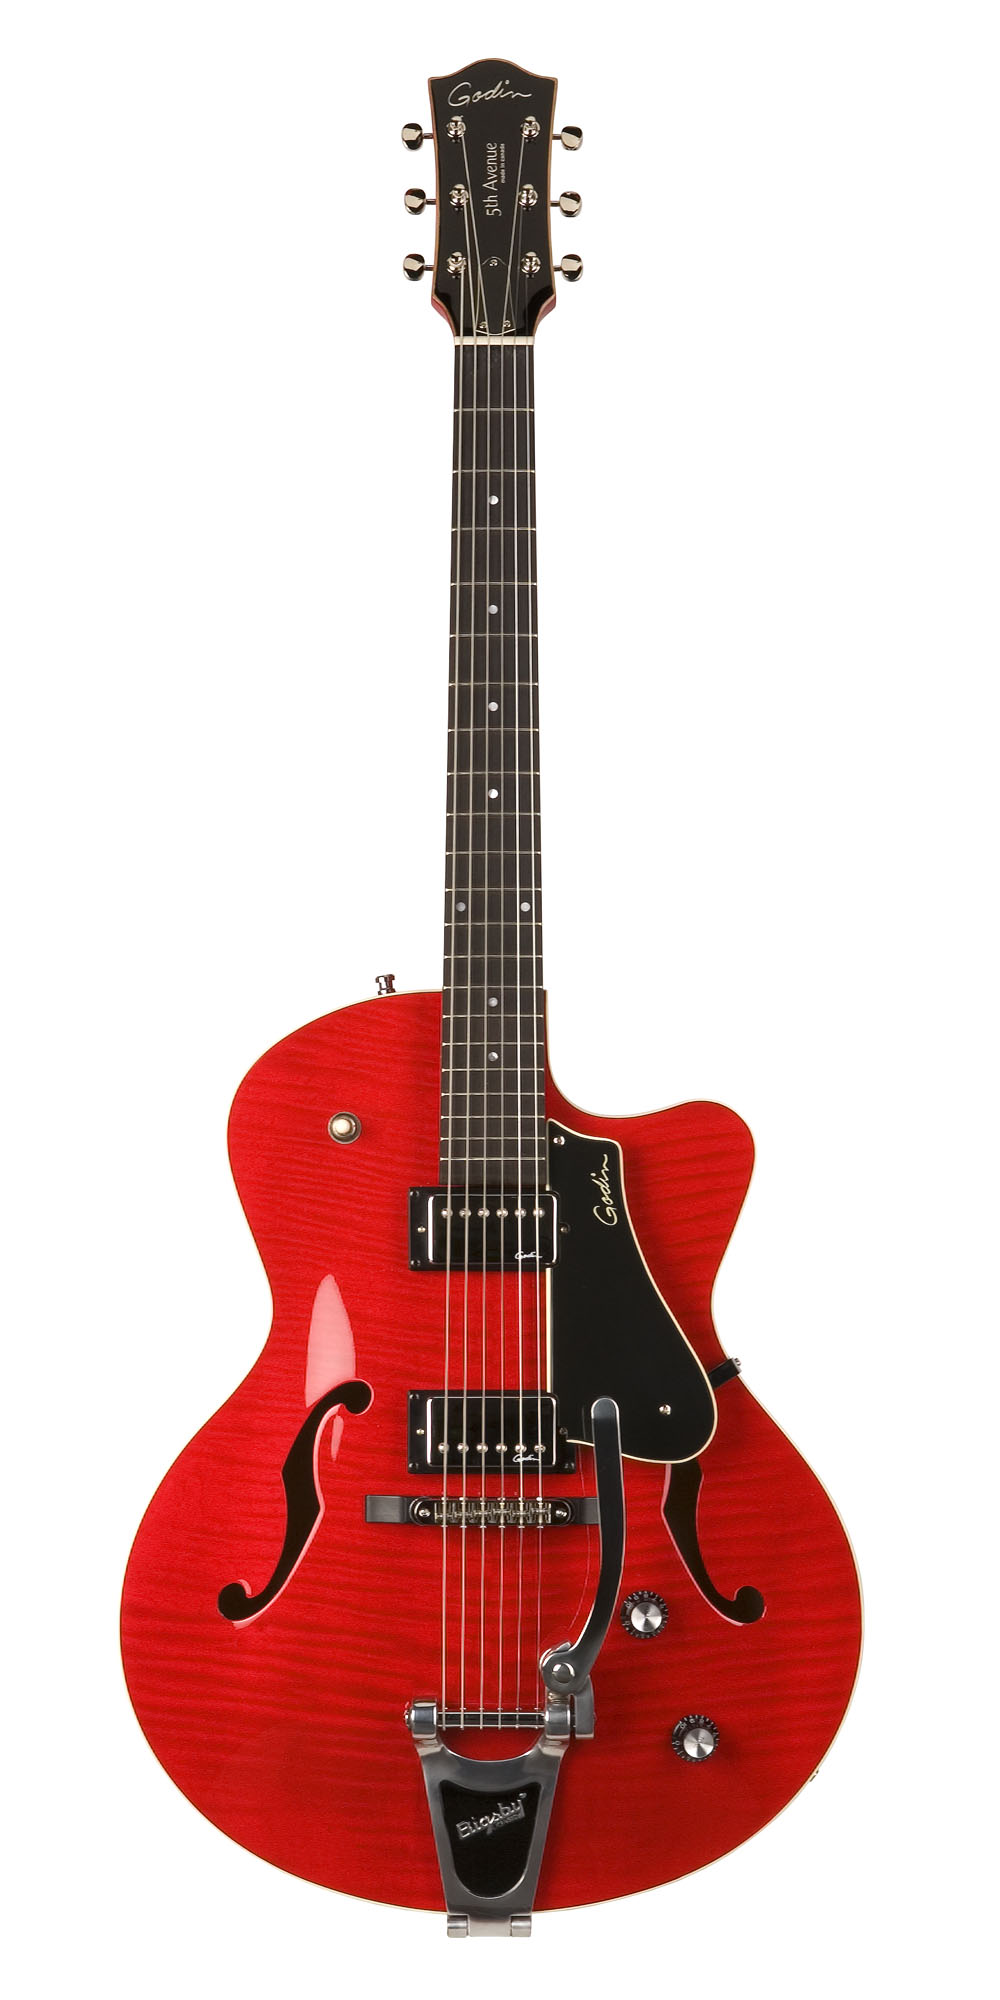 Godin 35182 5th Avenue Uptown Trans Red Archtop Semi-Hollow Electric Guitar